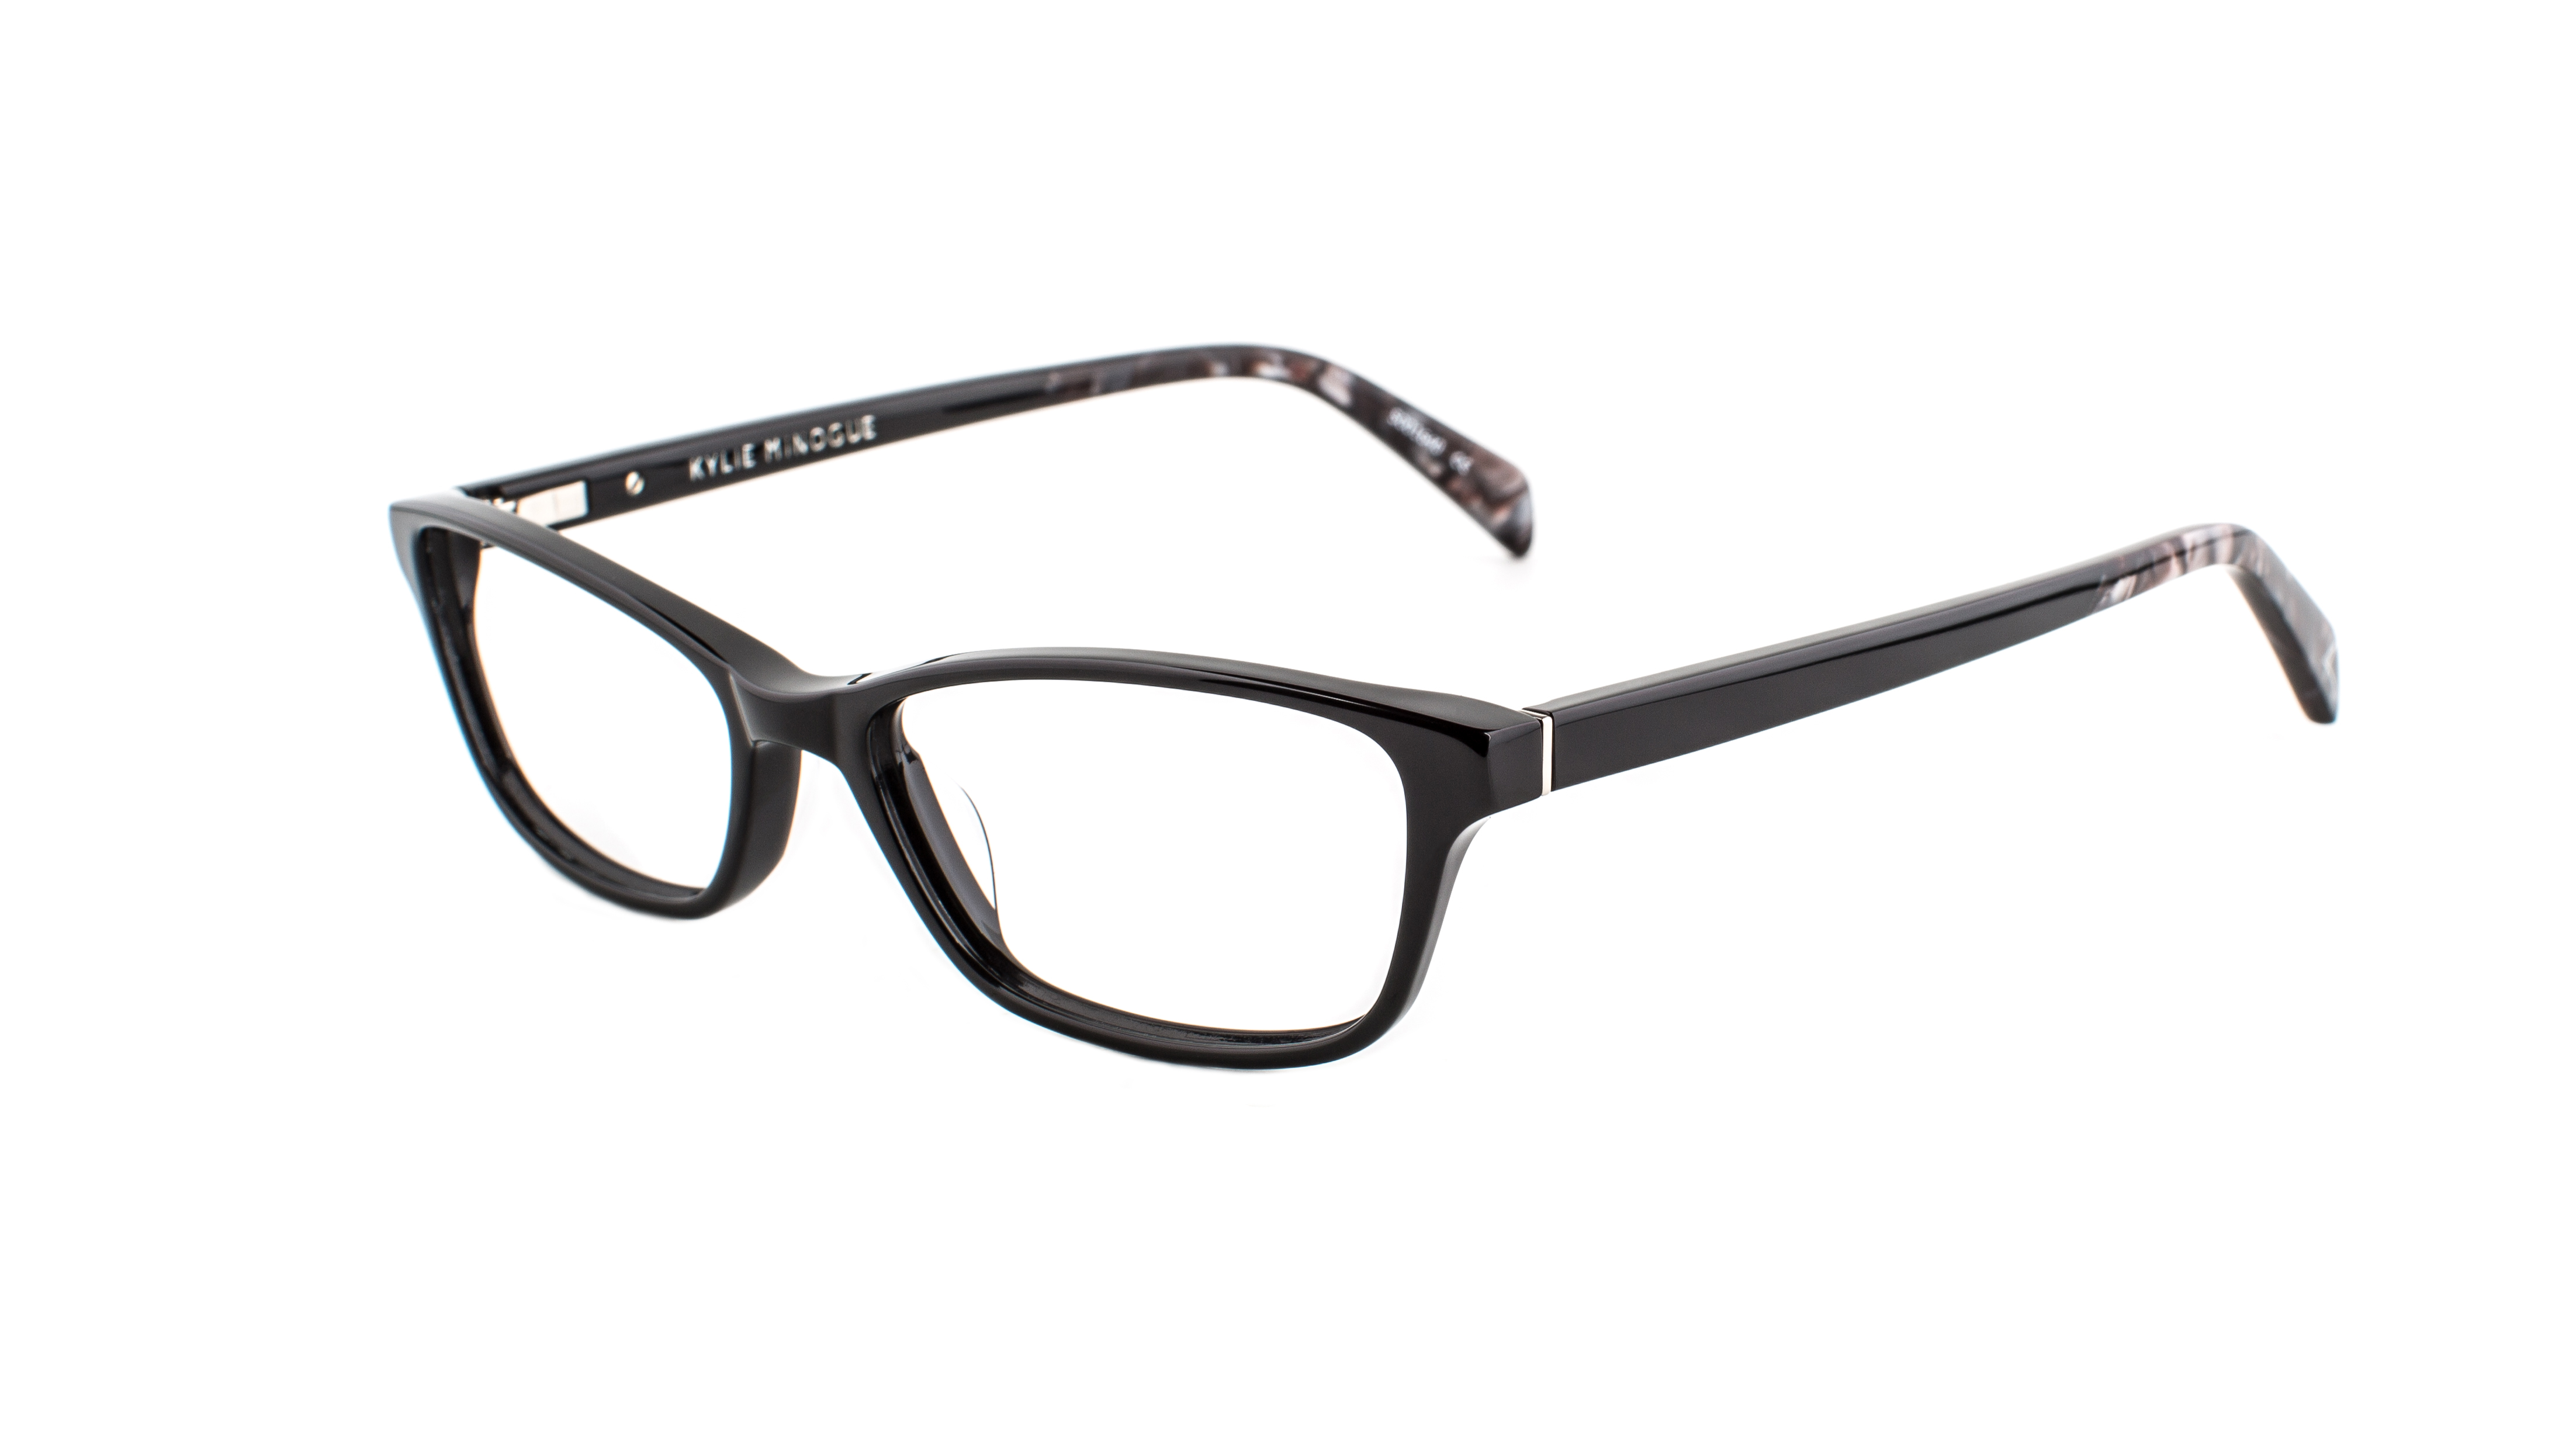 Kylie Minogue Eyewear_Kylie 10_SKU 30520240_RRP 2 pairs from $369 (2)